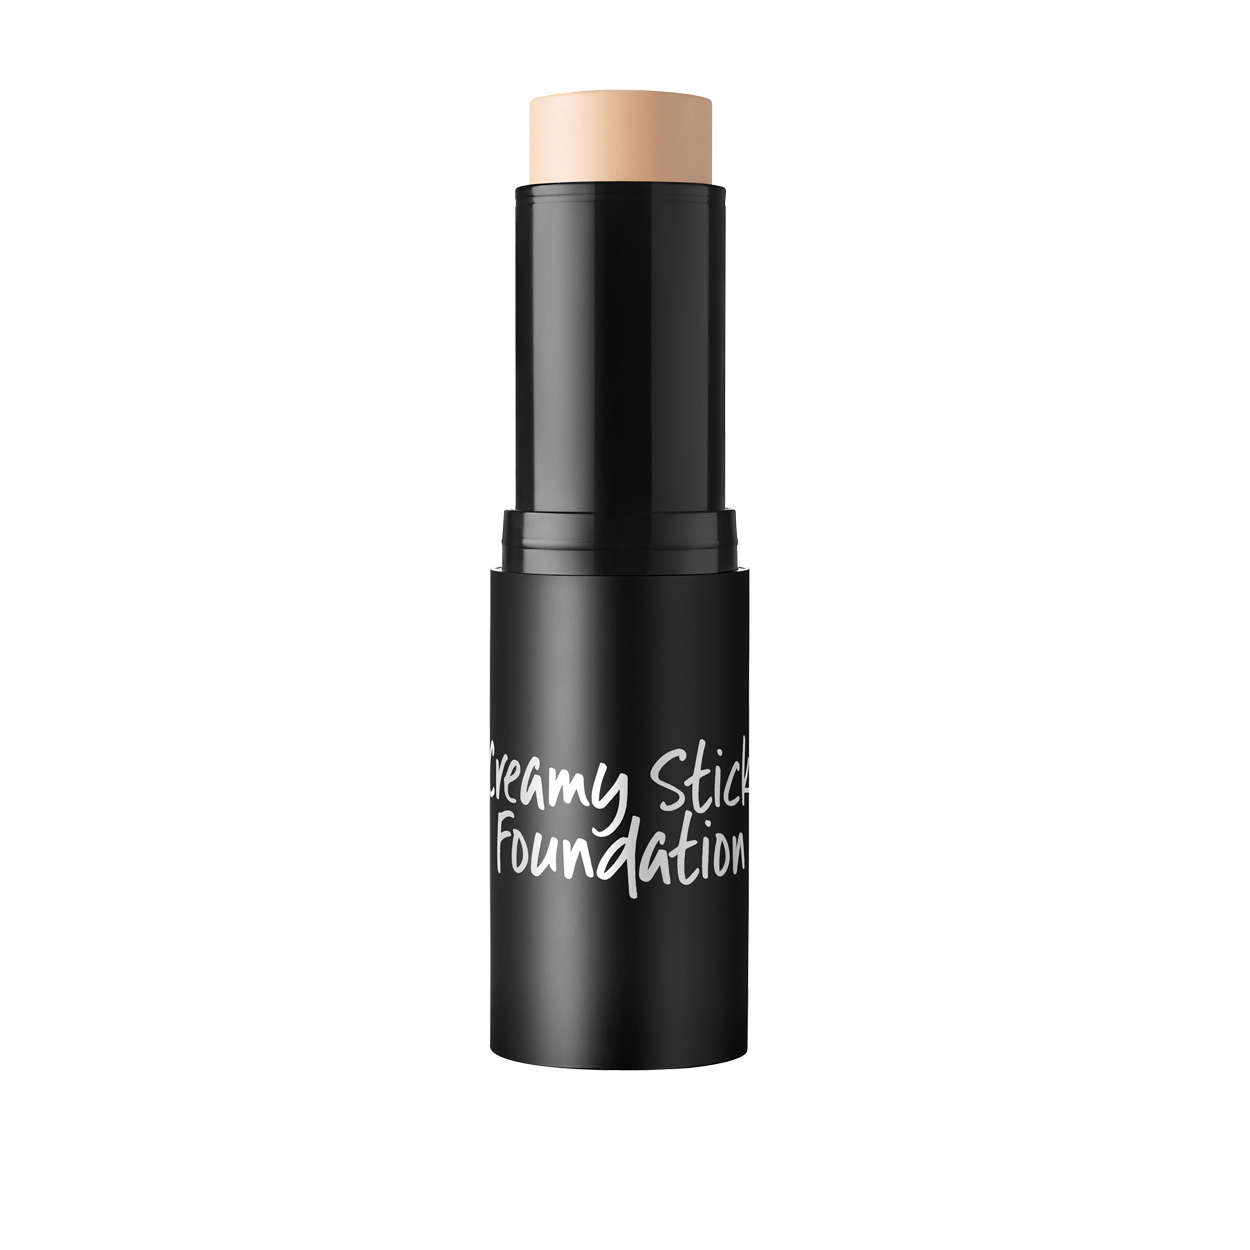 Alcina - Krémový make-up v tyčince Creamy Stick Foundation - light